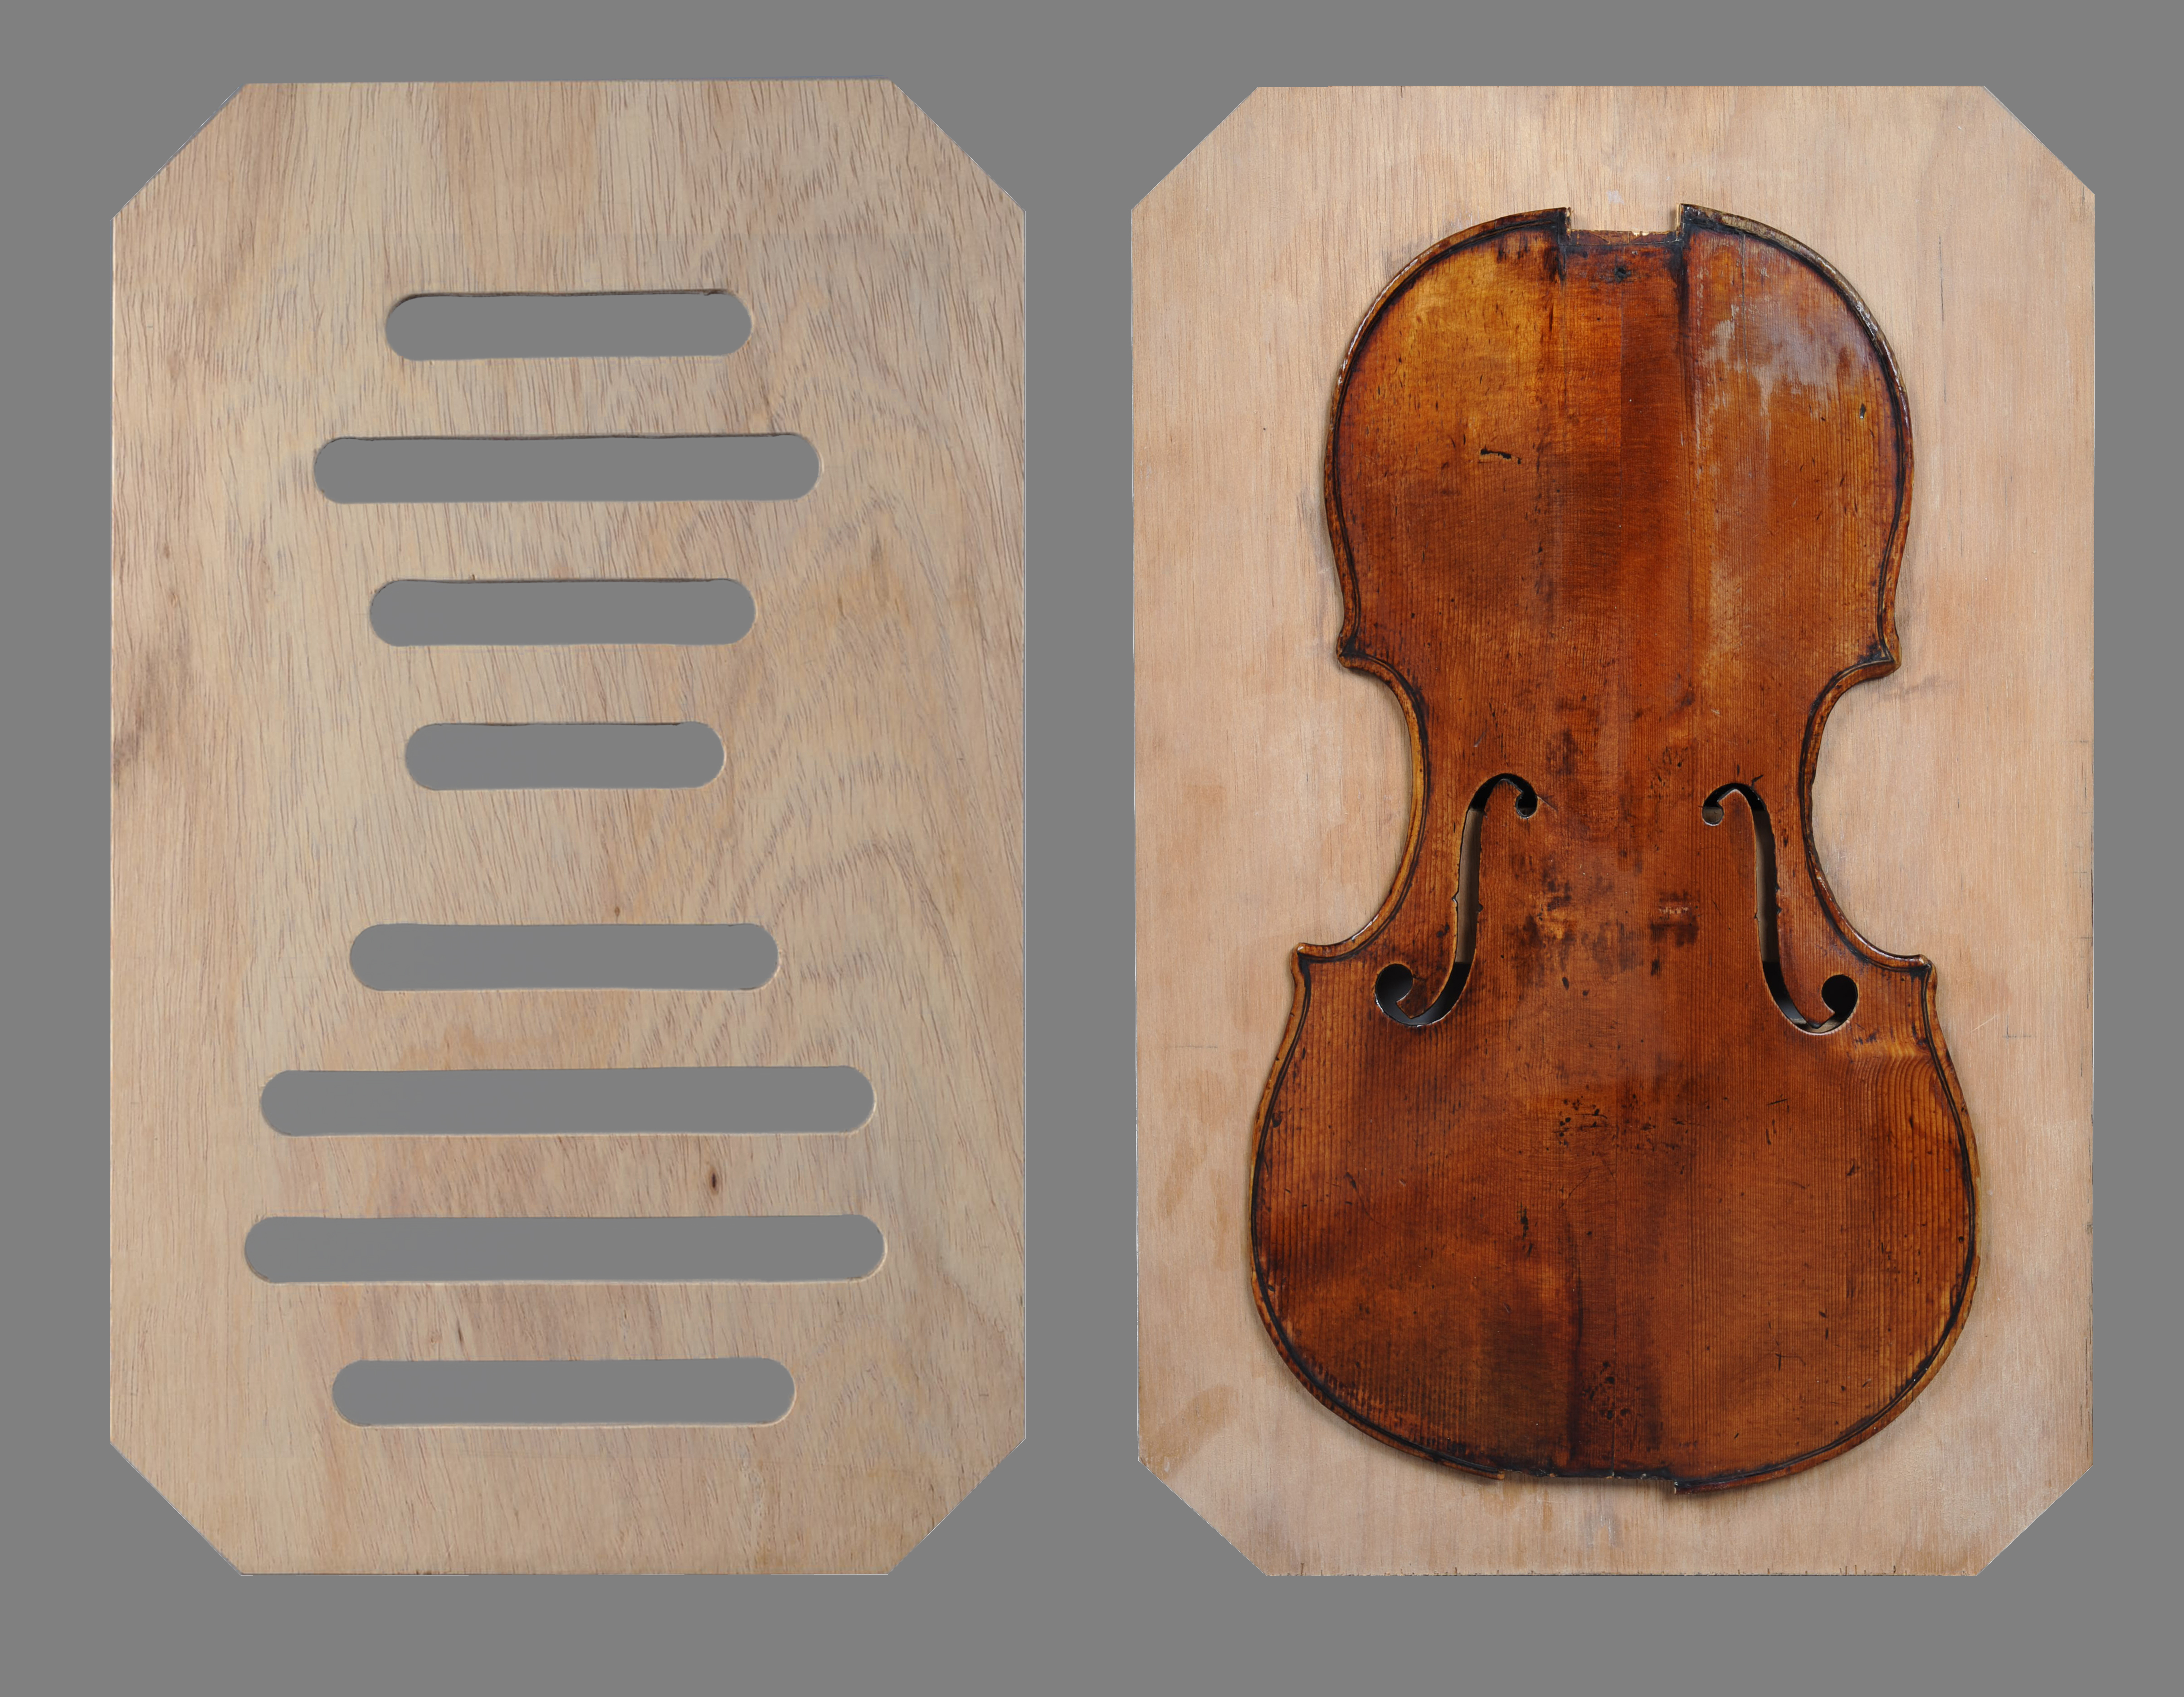 Old wood minerale interior of violin - Fig 1 Board With Holes To Insert The Wedges